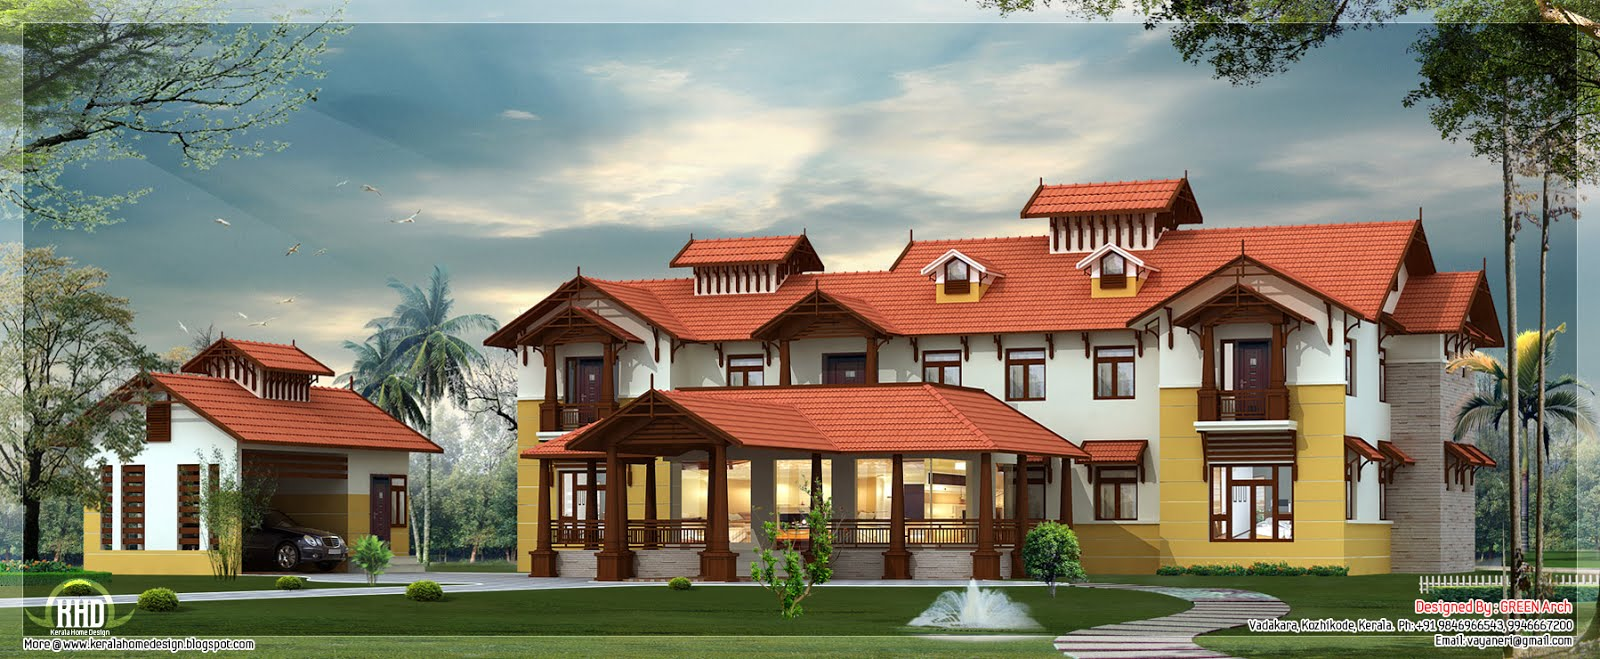 Super luxury Kerala style home design Kerala home design and floor plans